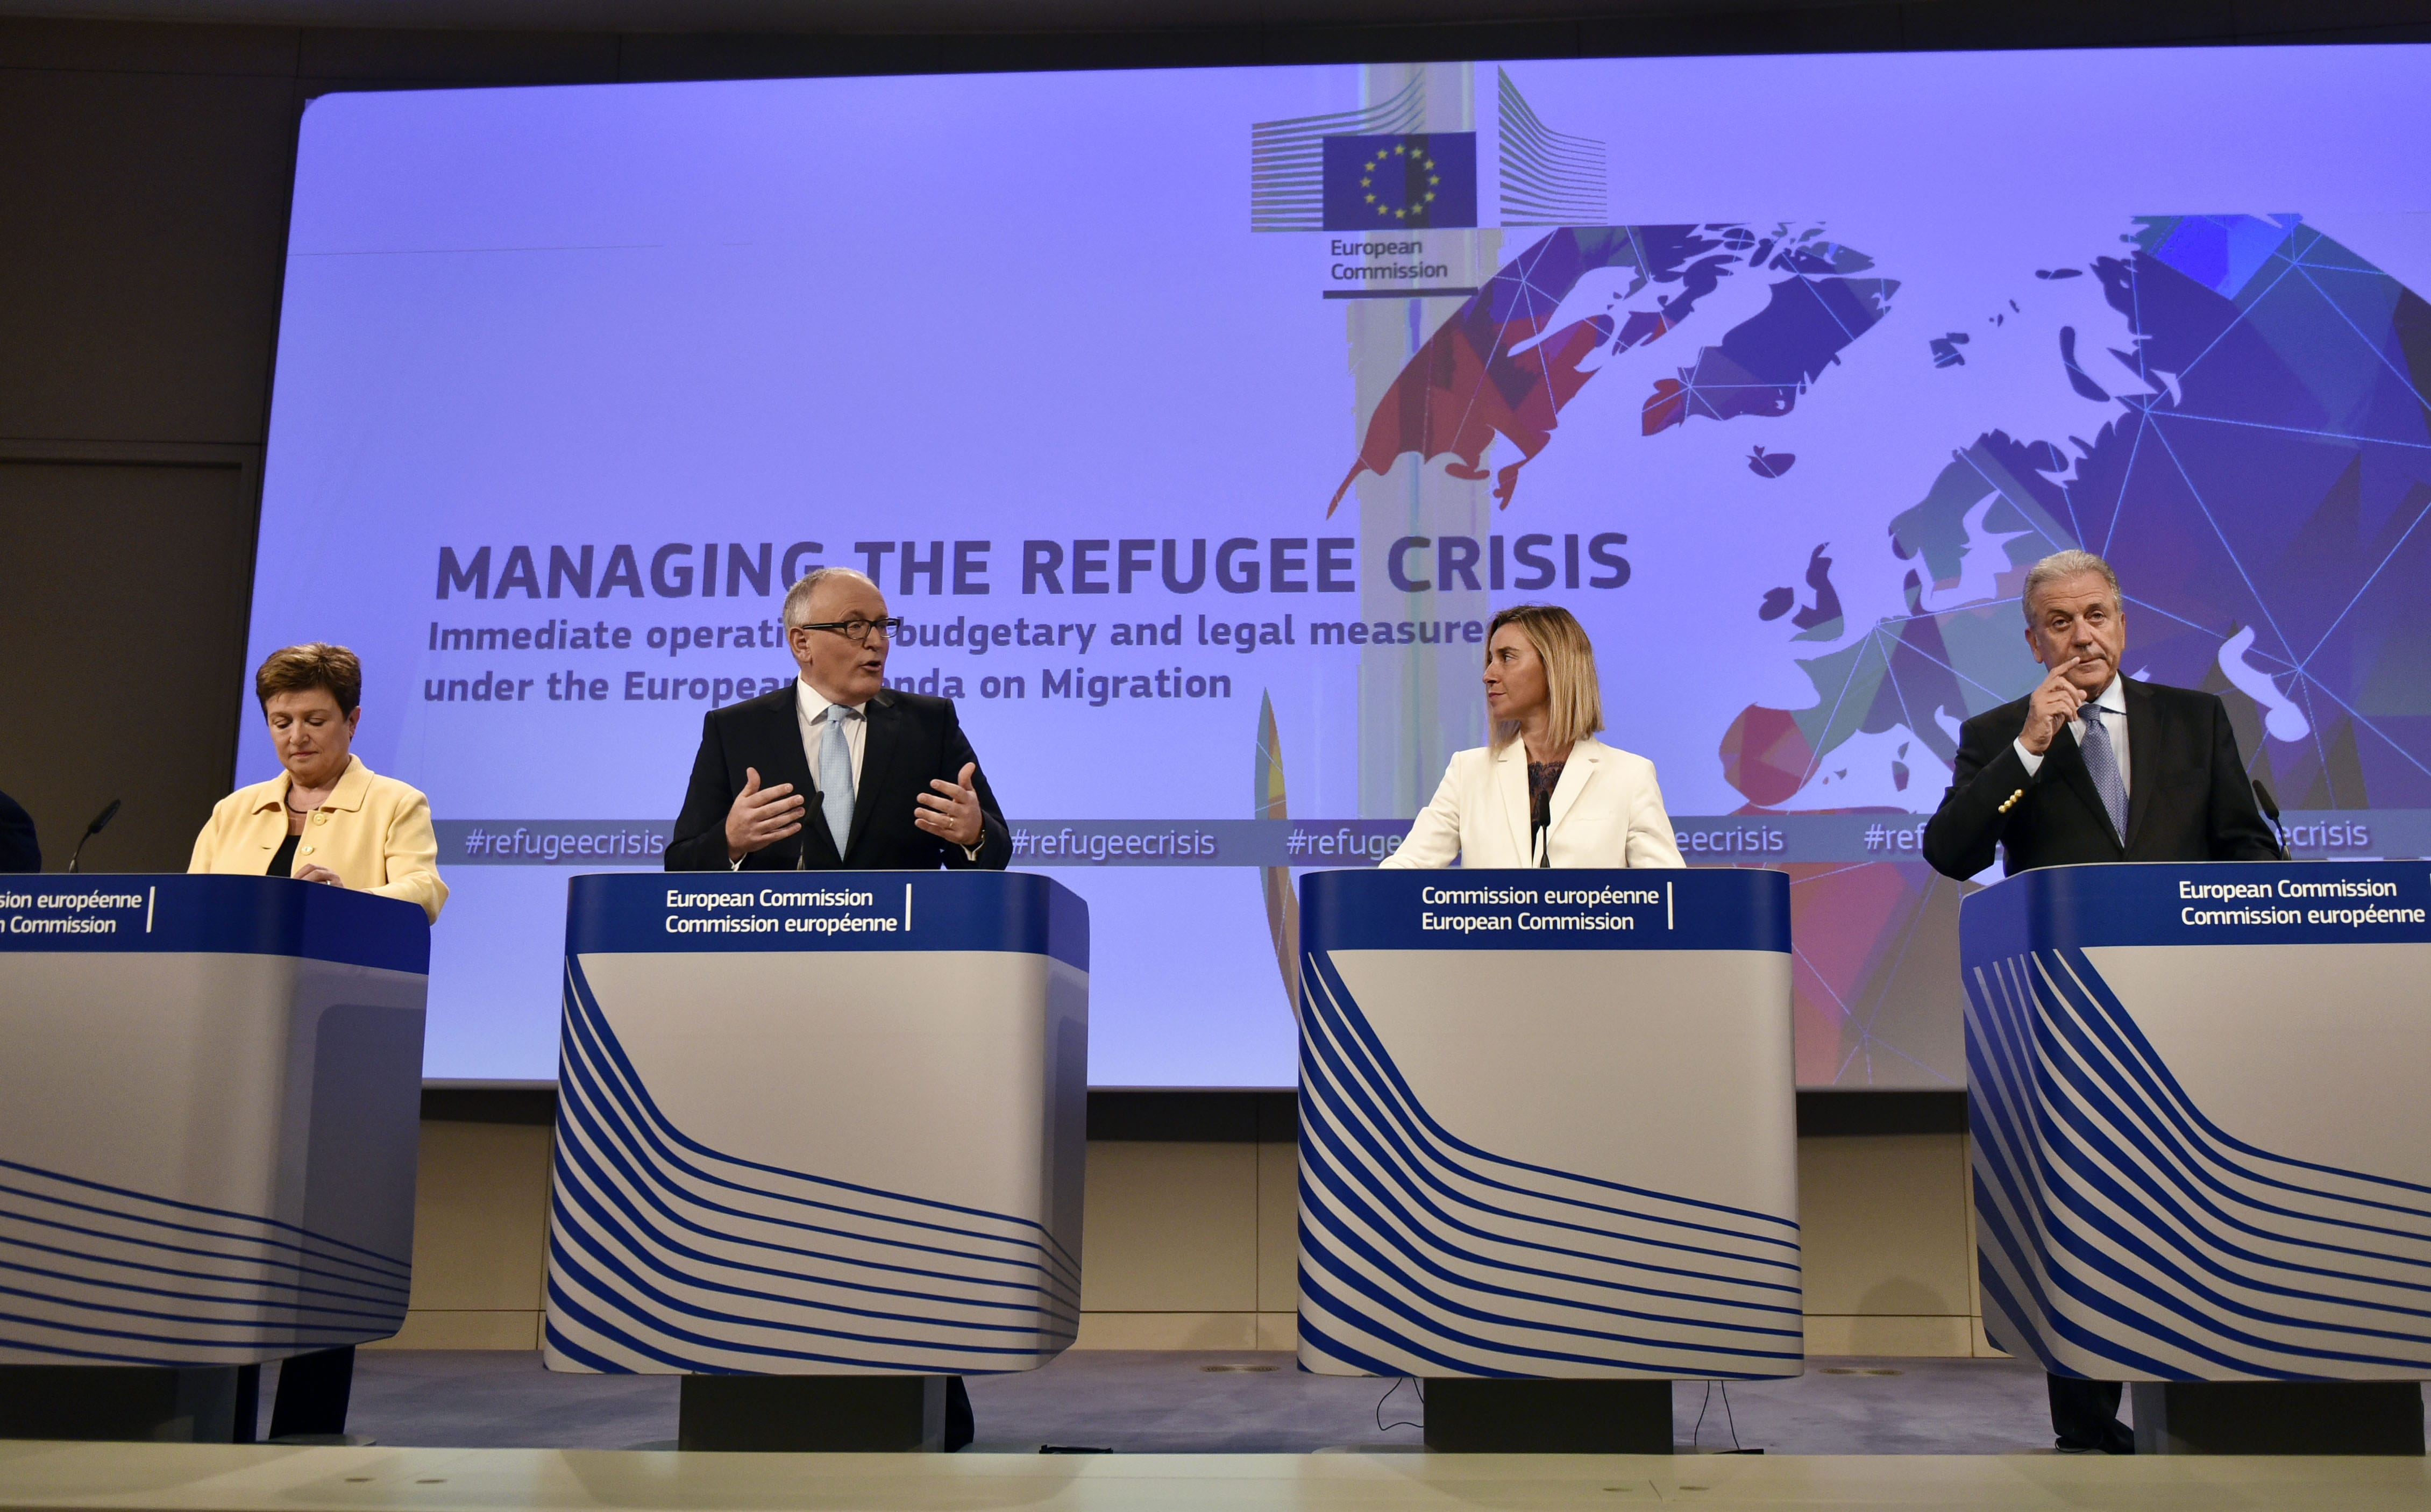 Between Security and Protection: The E.U'.s Refugee and Migration Policy Crisis